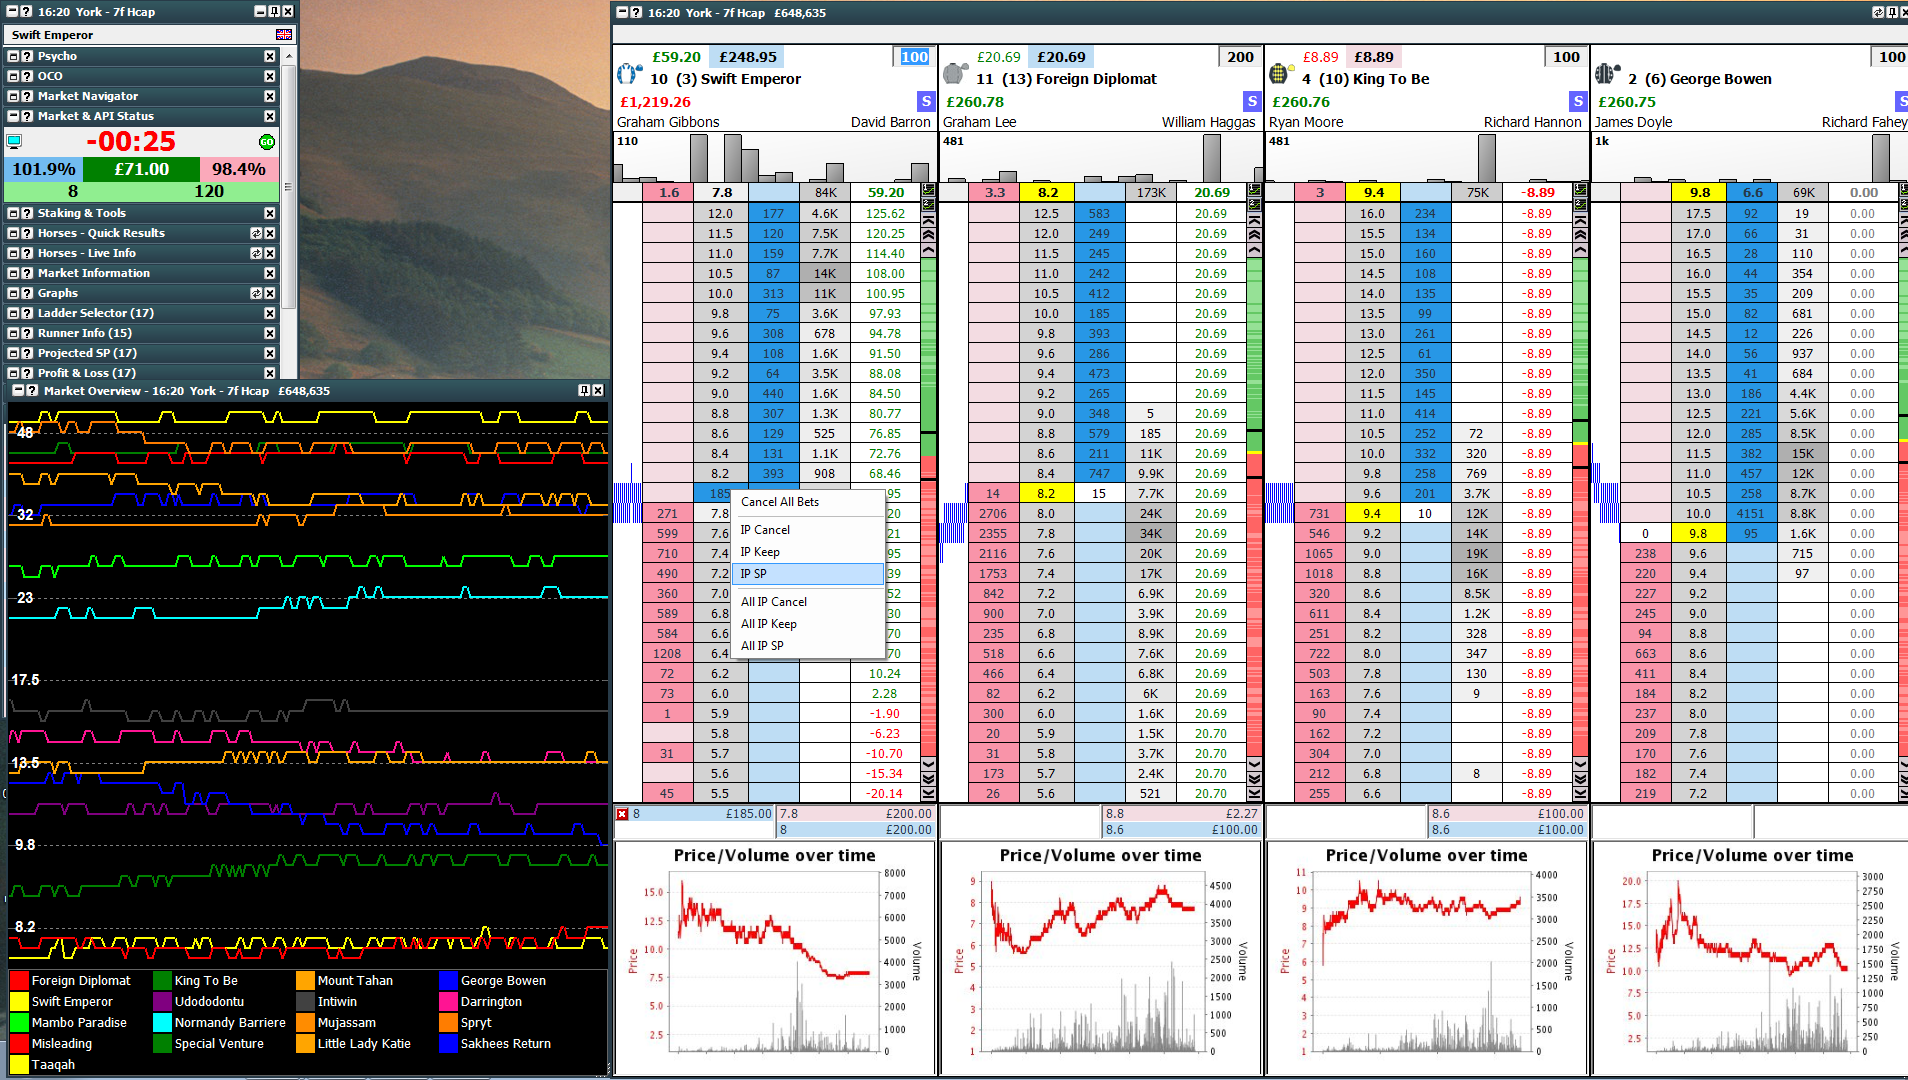 Trading on Betfair at York